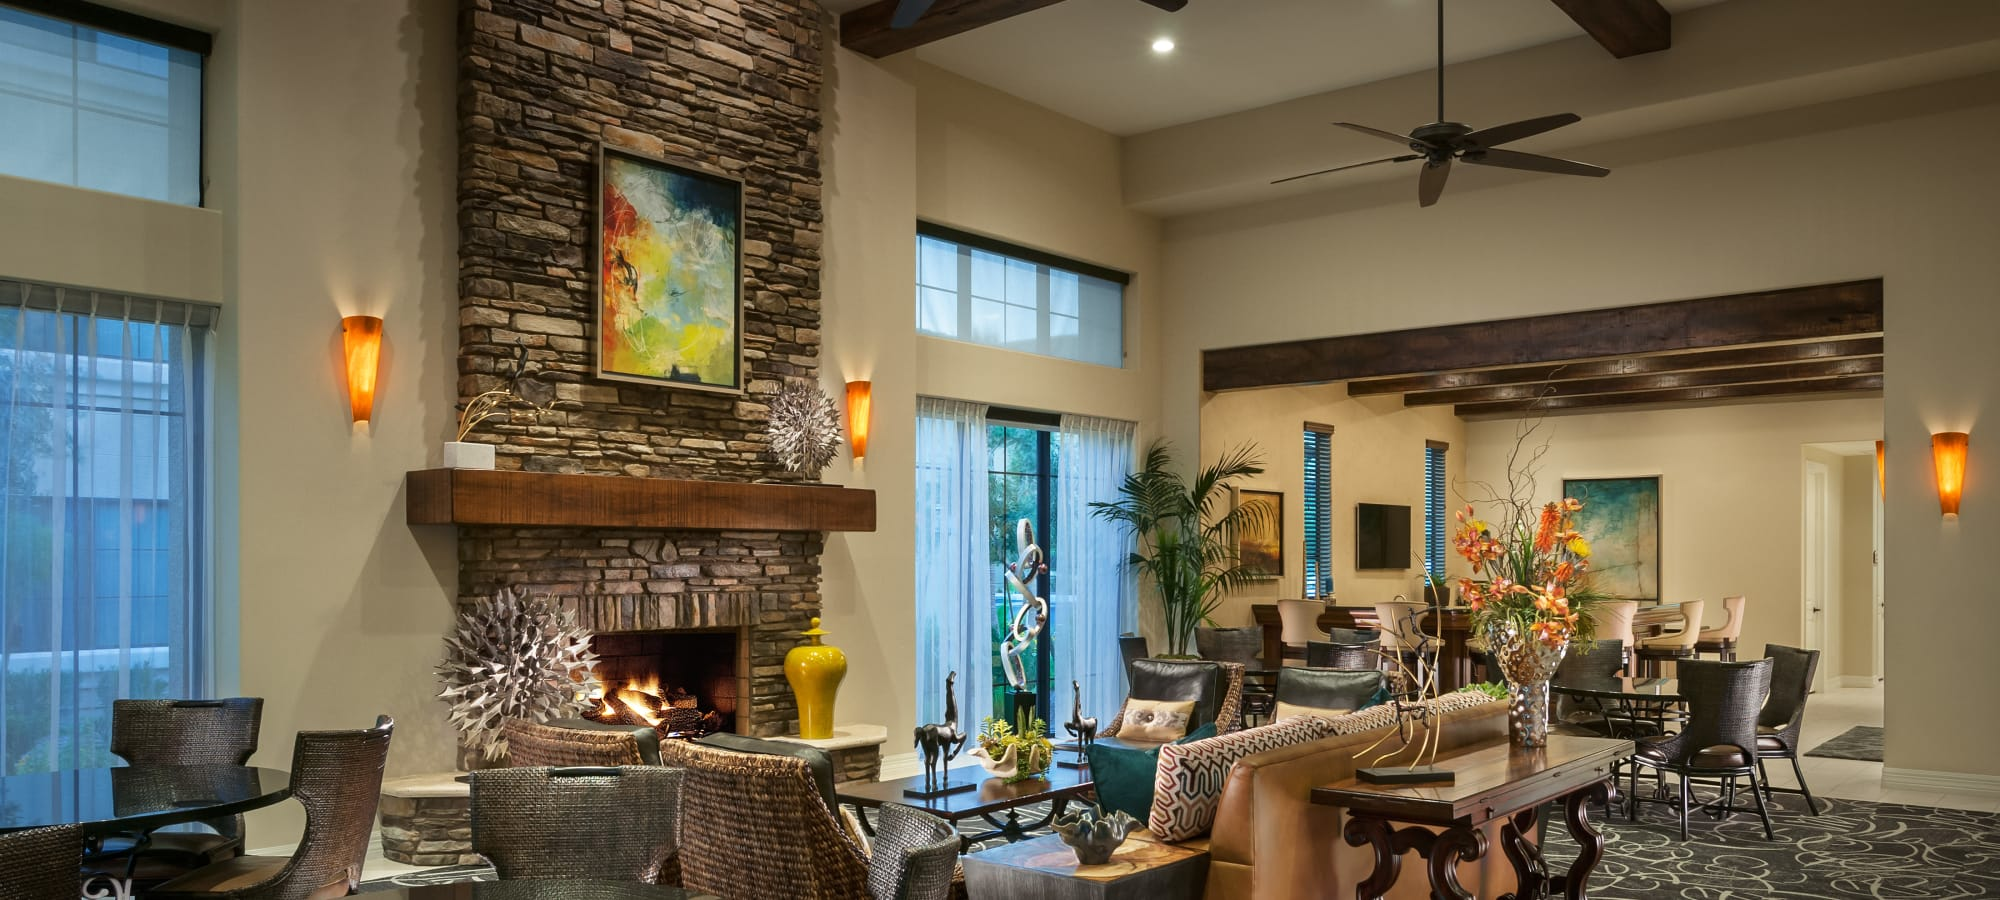 Interior view of the lavish resident clubhouse at San Milan in Phoenix, Arizona